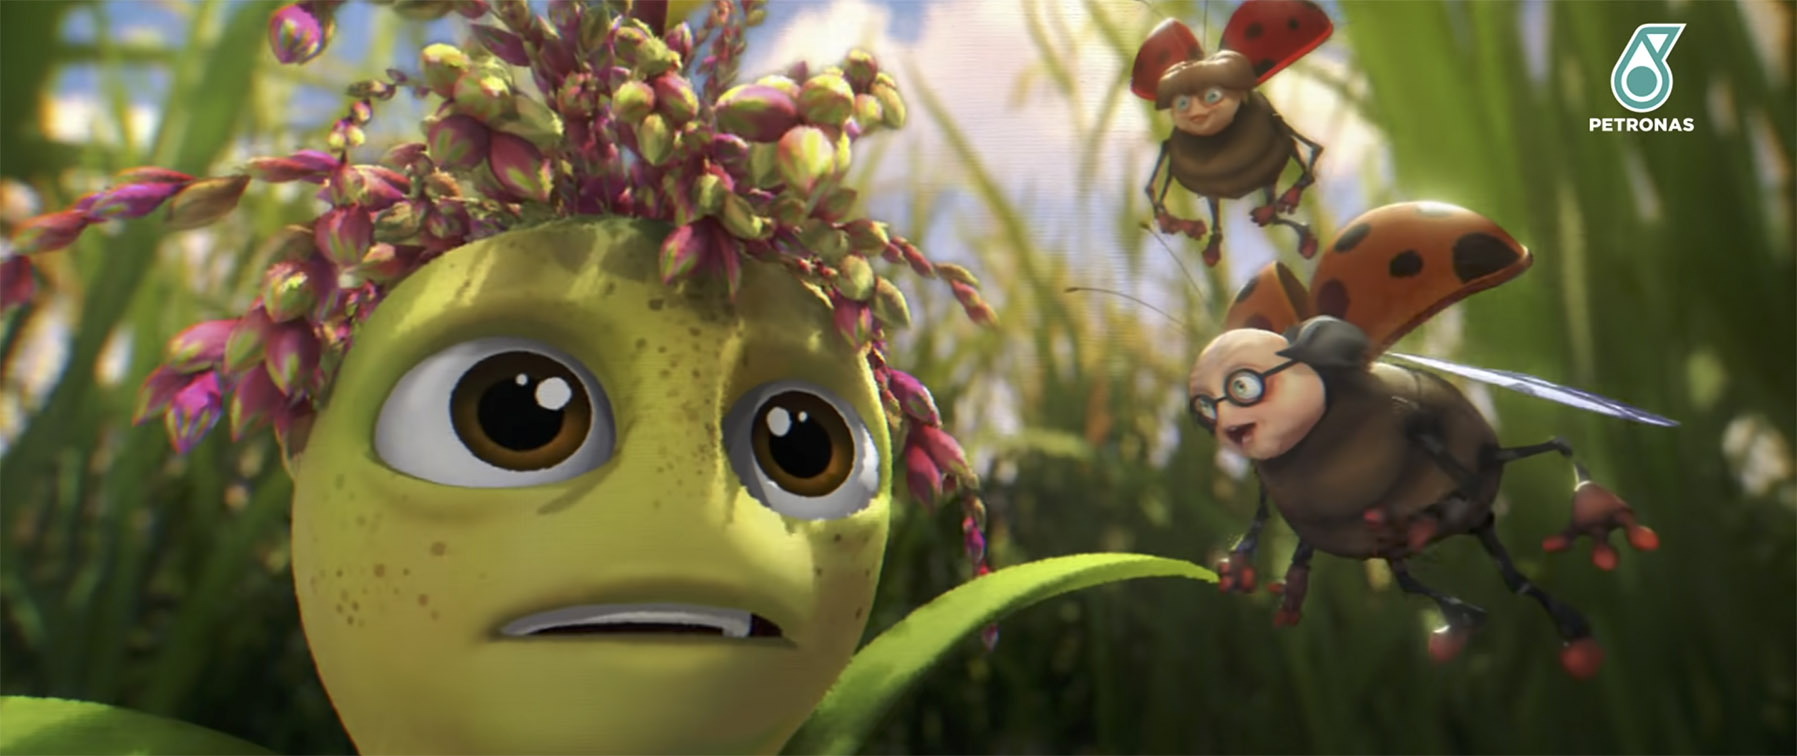 Ensemble Worldwide Malaysia and PETRONAS round off festive May with animated films